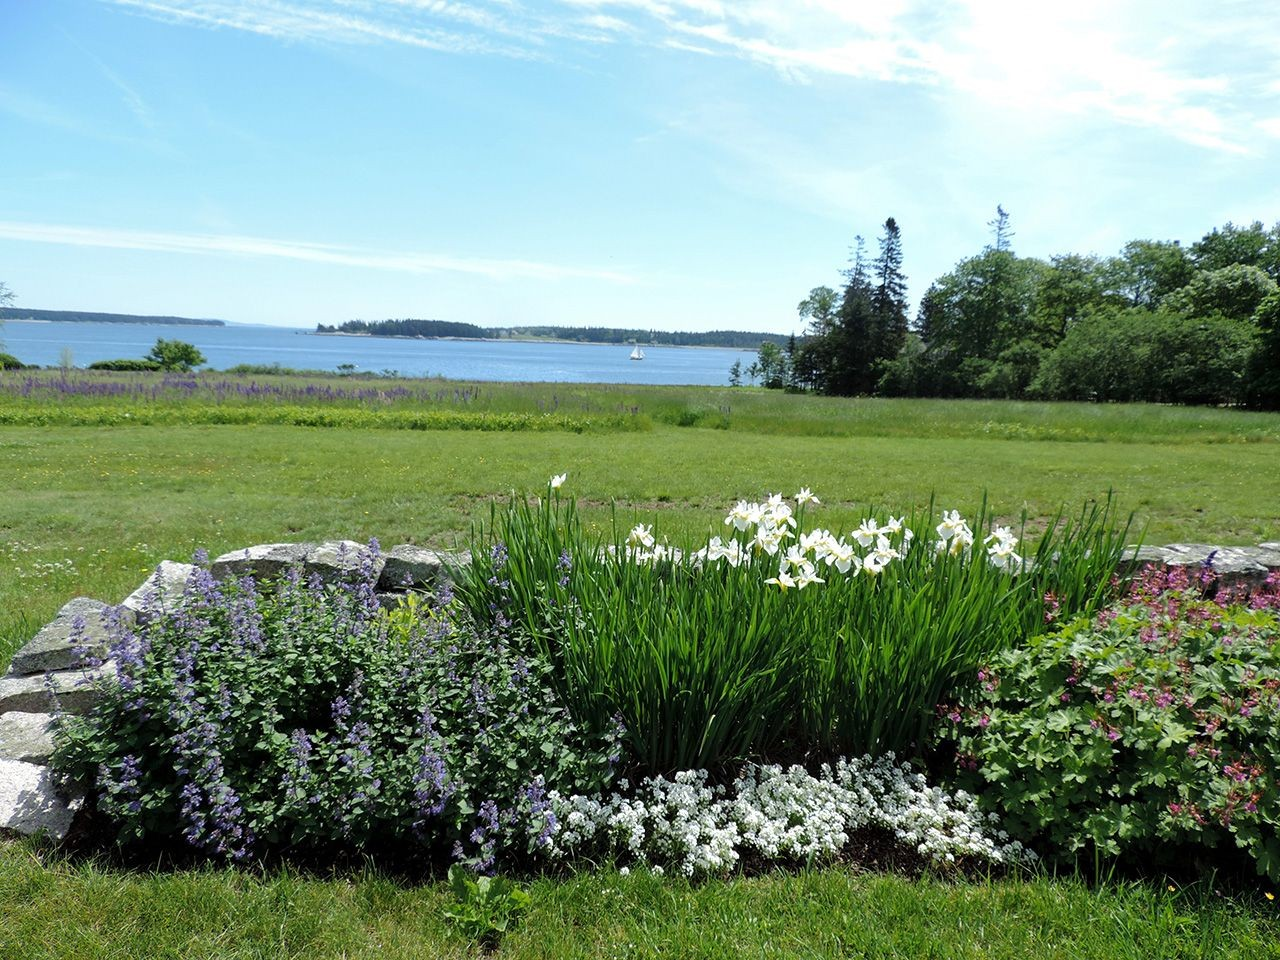 seawall farm a luxury single family home for sale in southwest harbor, maine property id 399902124 christie s international real estate